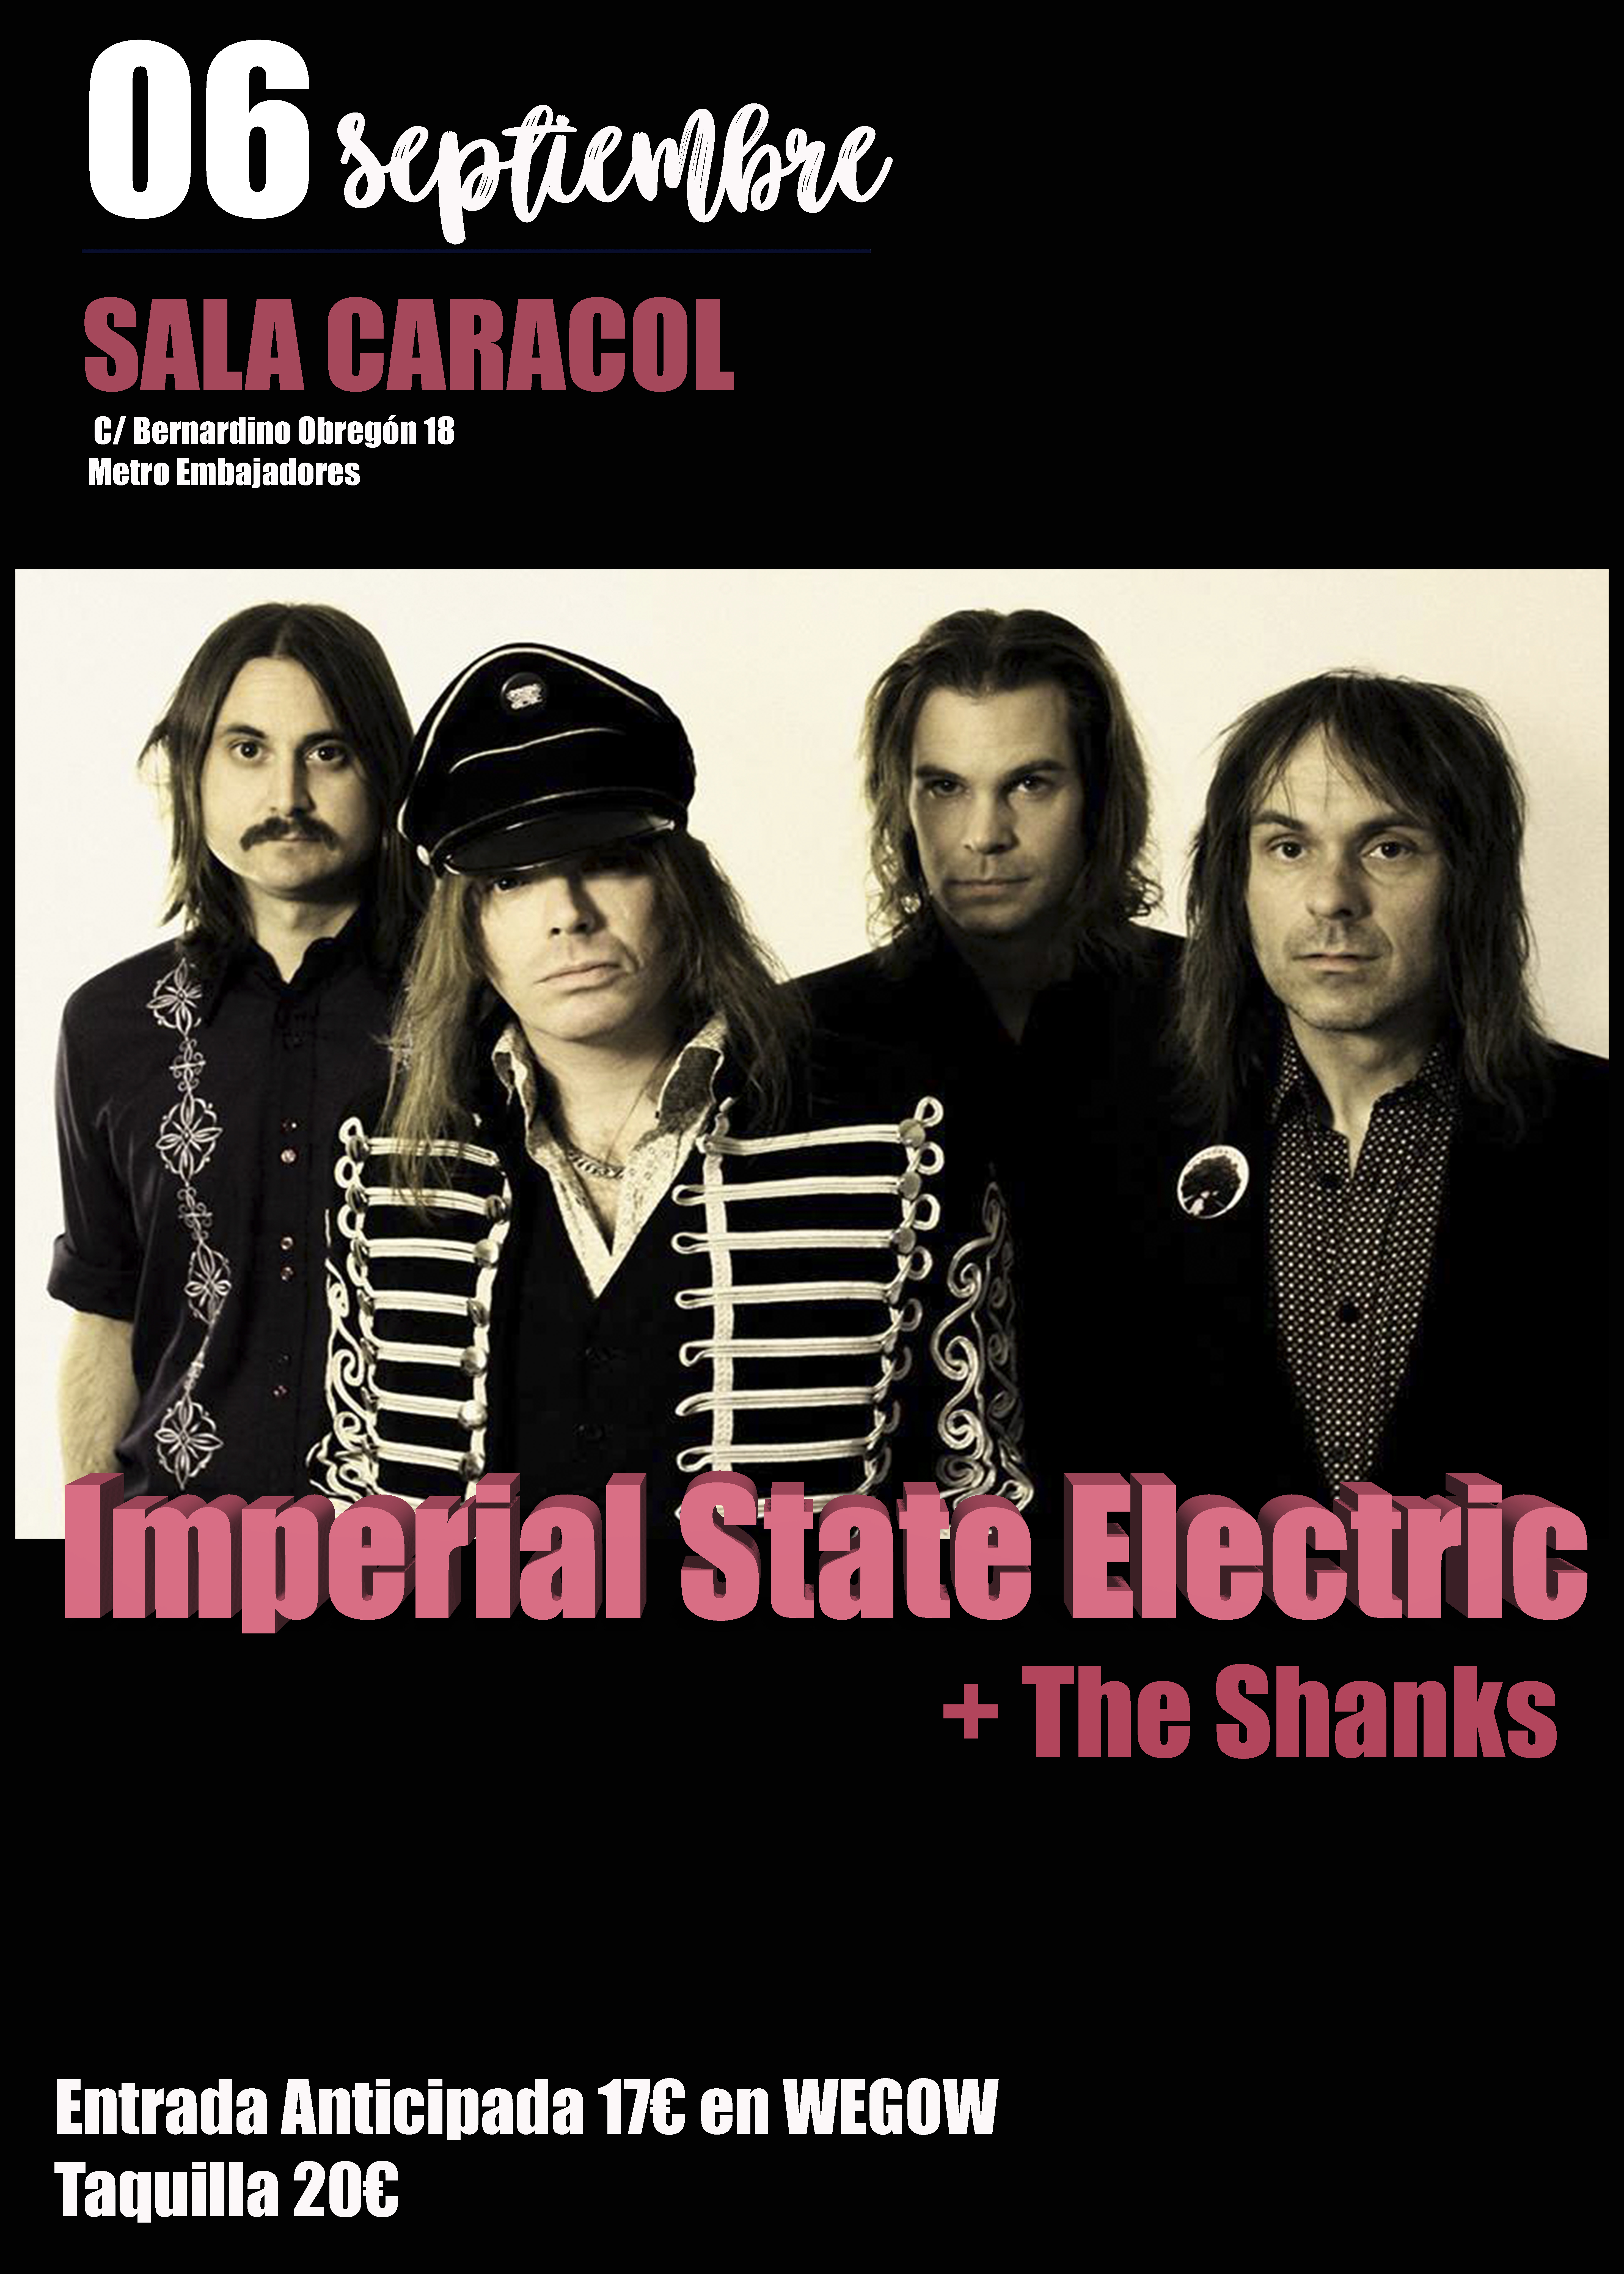 IMPERIAL STATE ELECTRIC + THE SHANKS